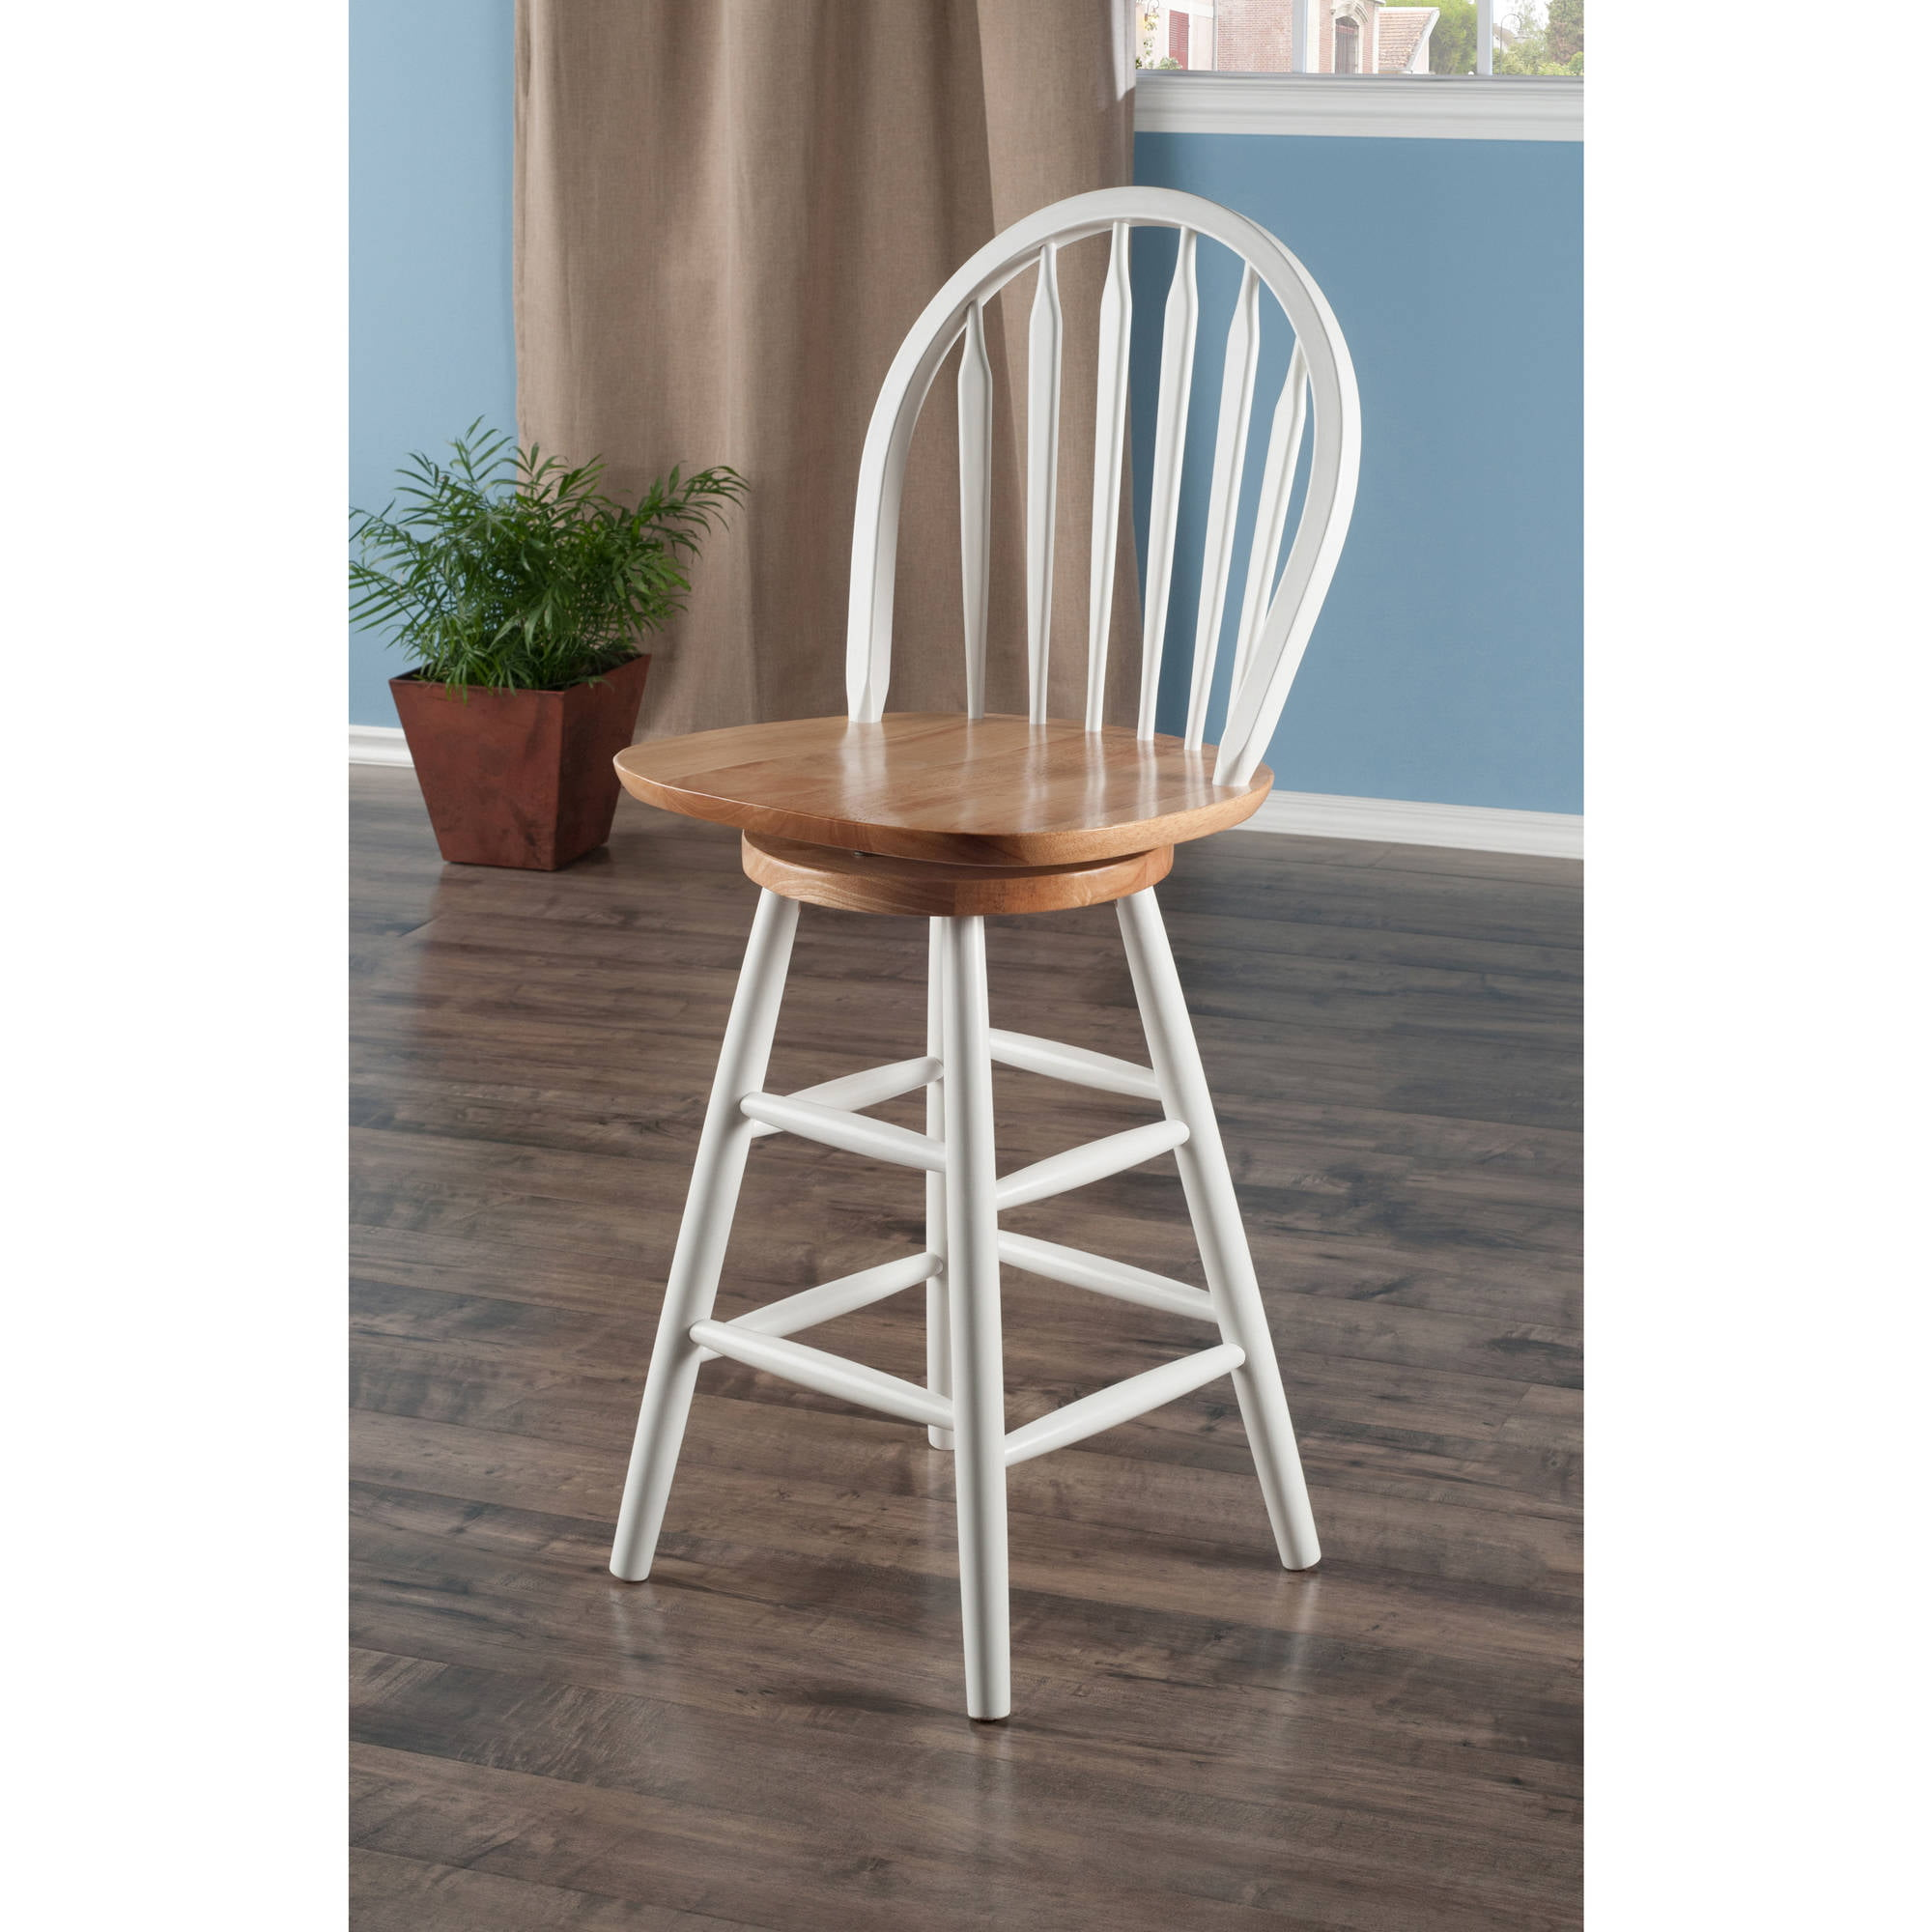 Winsome Wood Wagner 24 Arrow Back Windsor Stool Multiple Finish